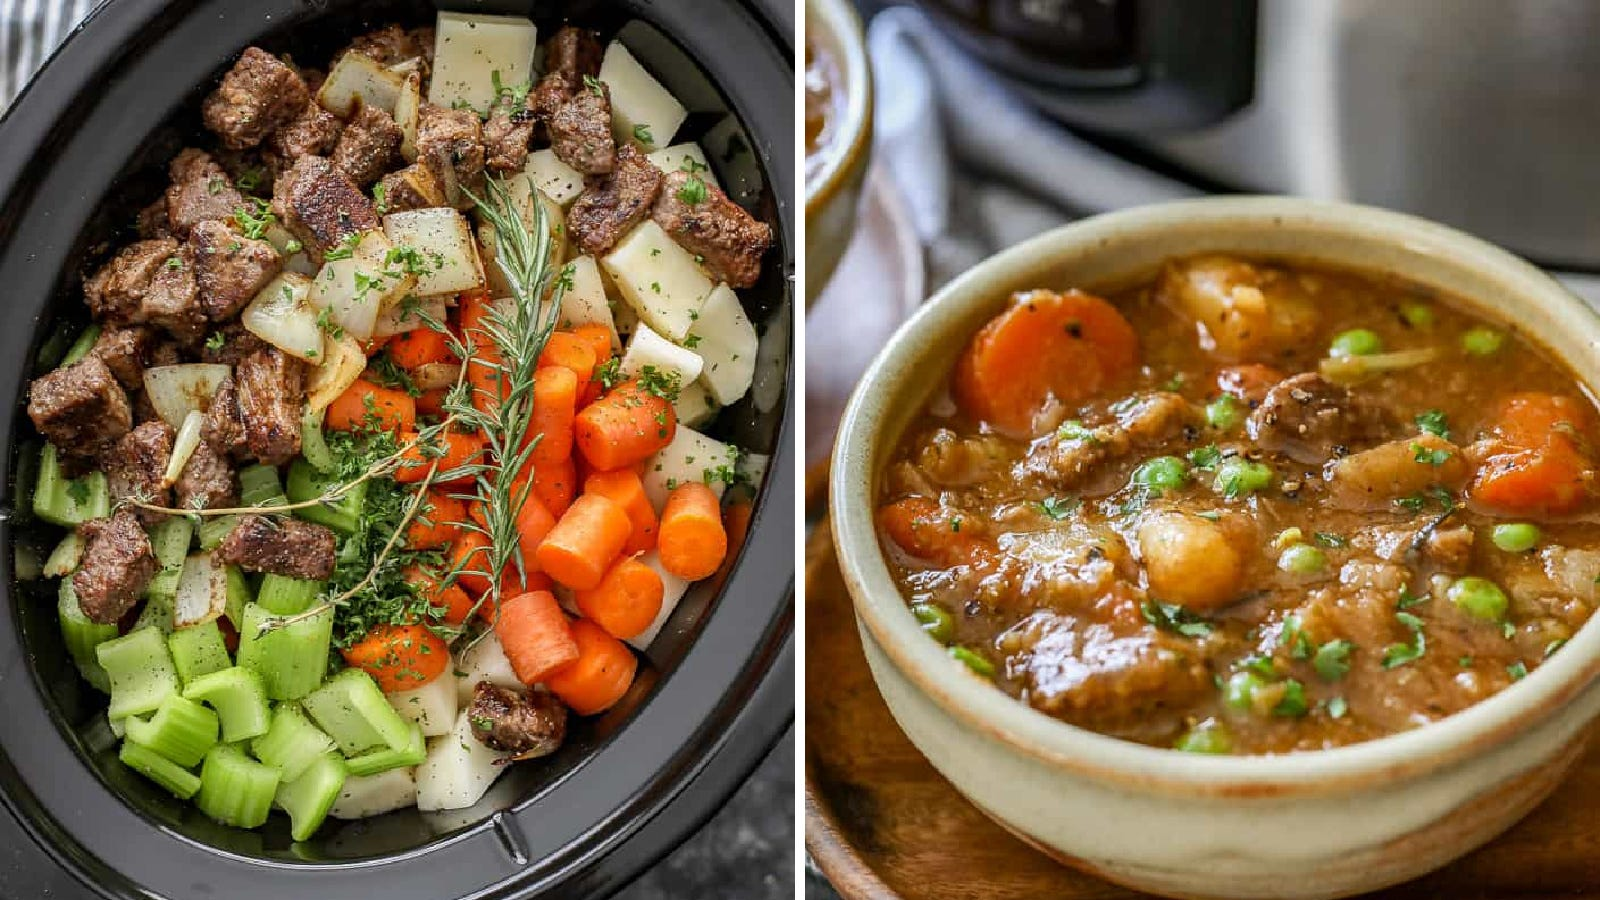 Two images of beef stew; the left image shows all the ingredients of beef stew placed in a slow cooker before it is cooked and the right image is a bowl of the finished product.